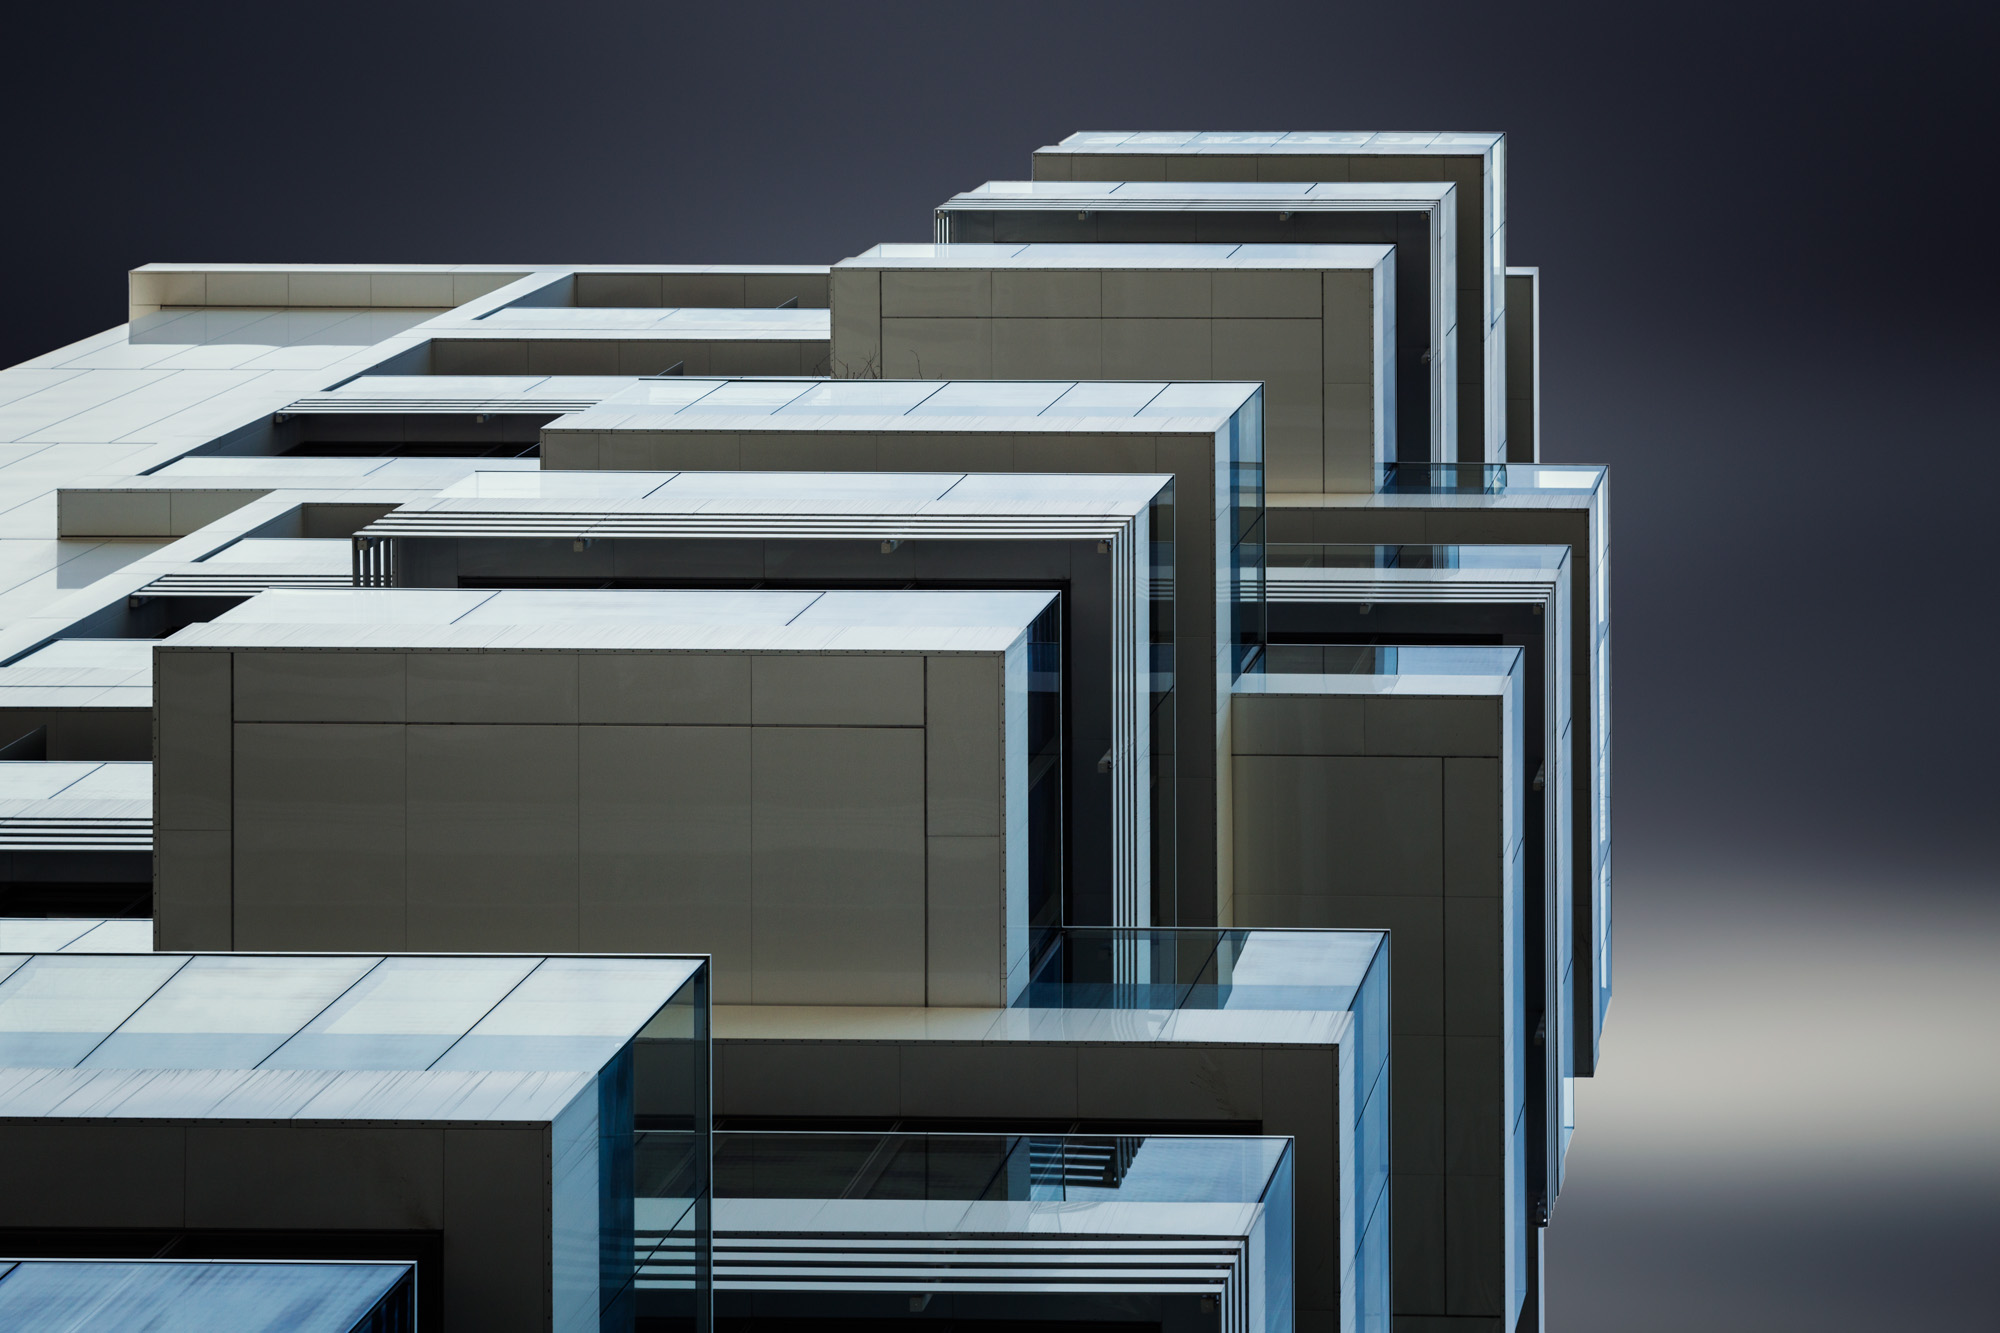 long exposure architecture photograph of cubist design modern architectural building